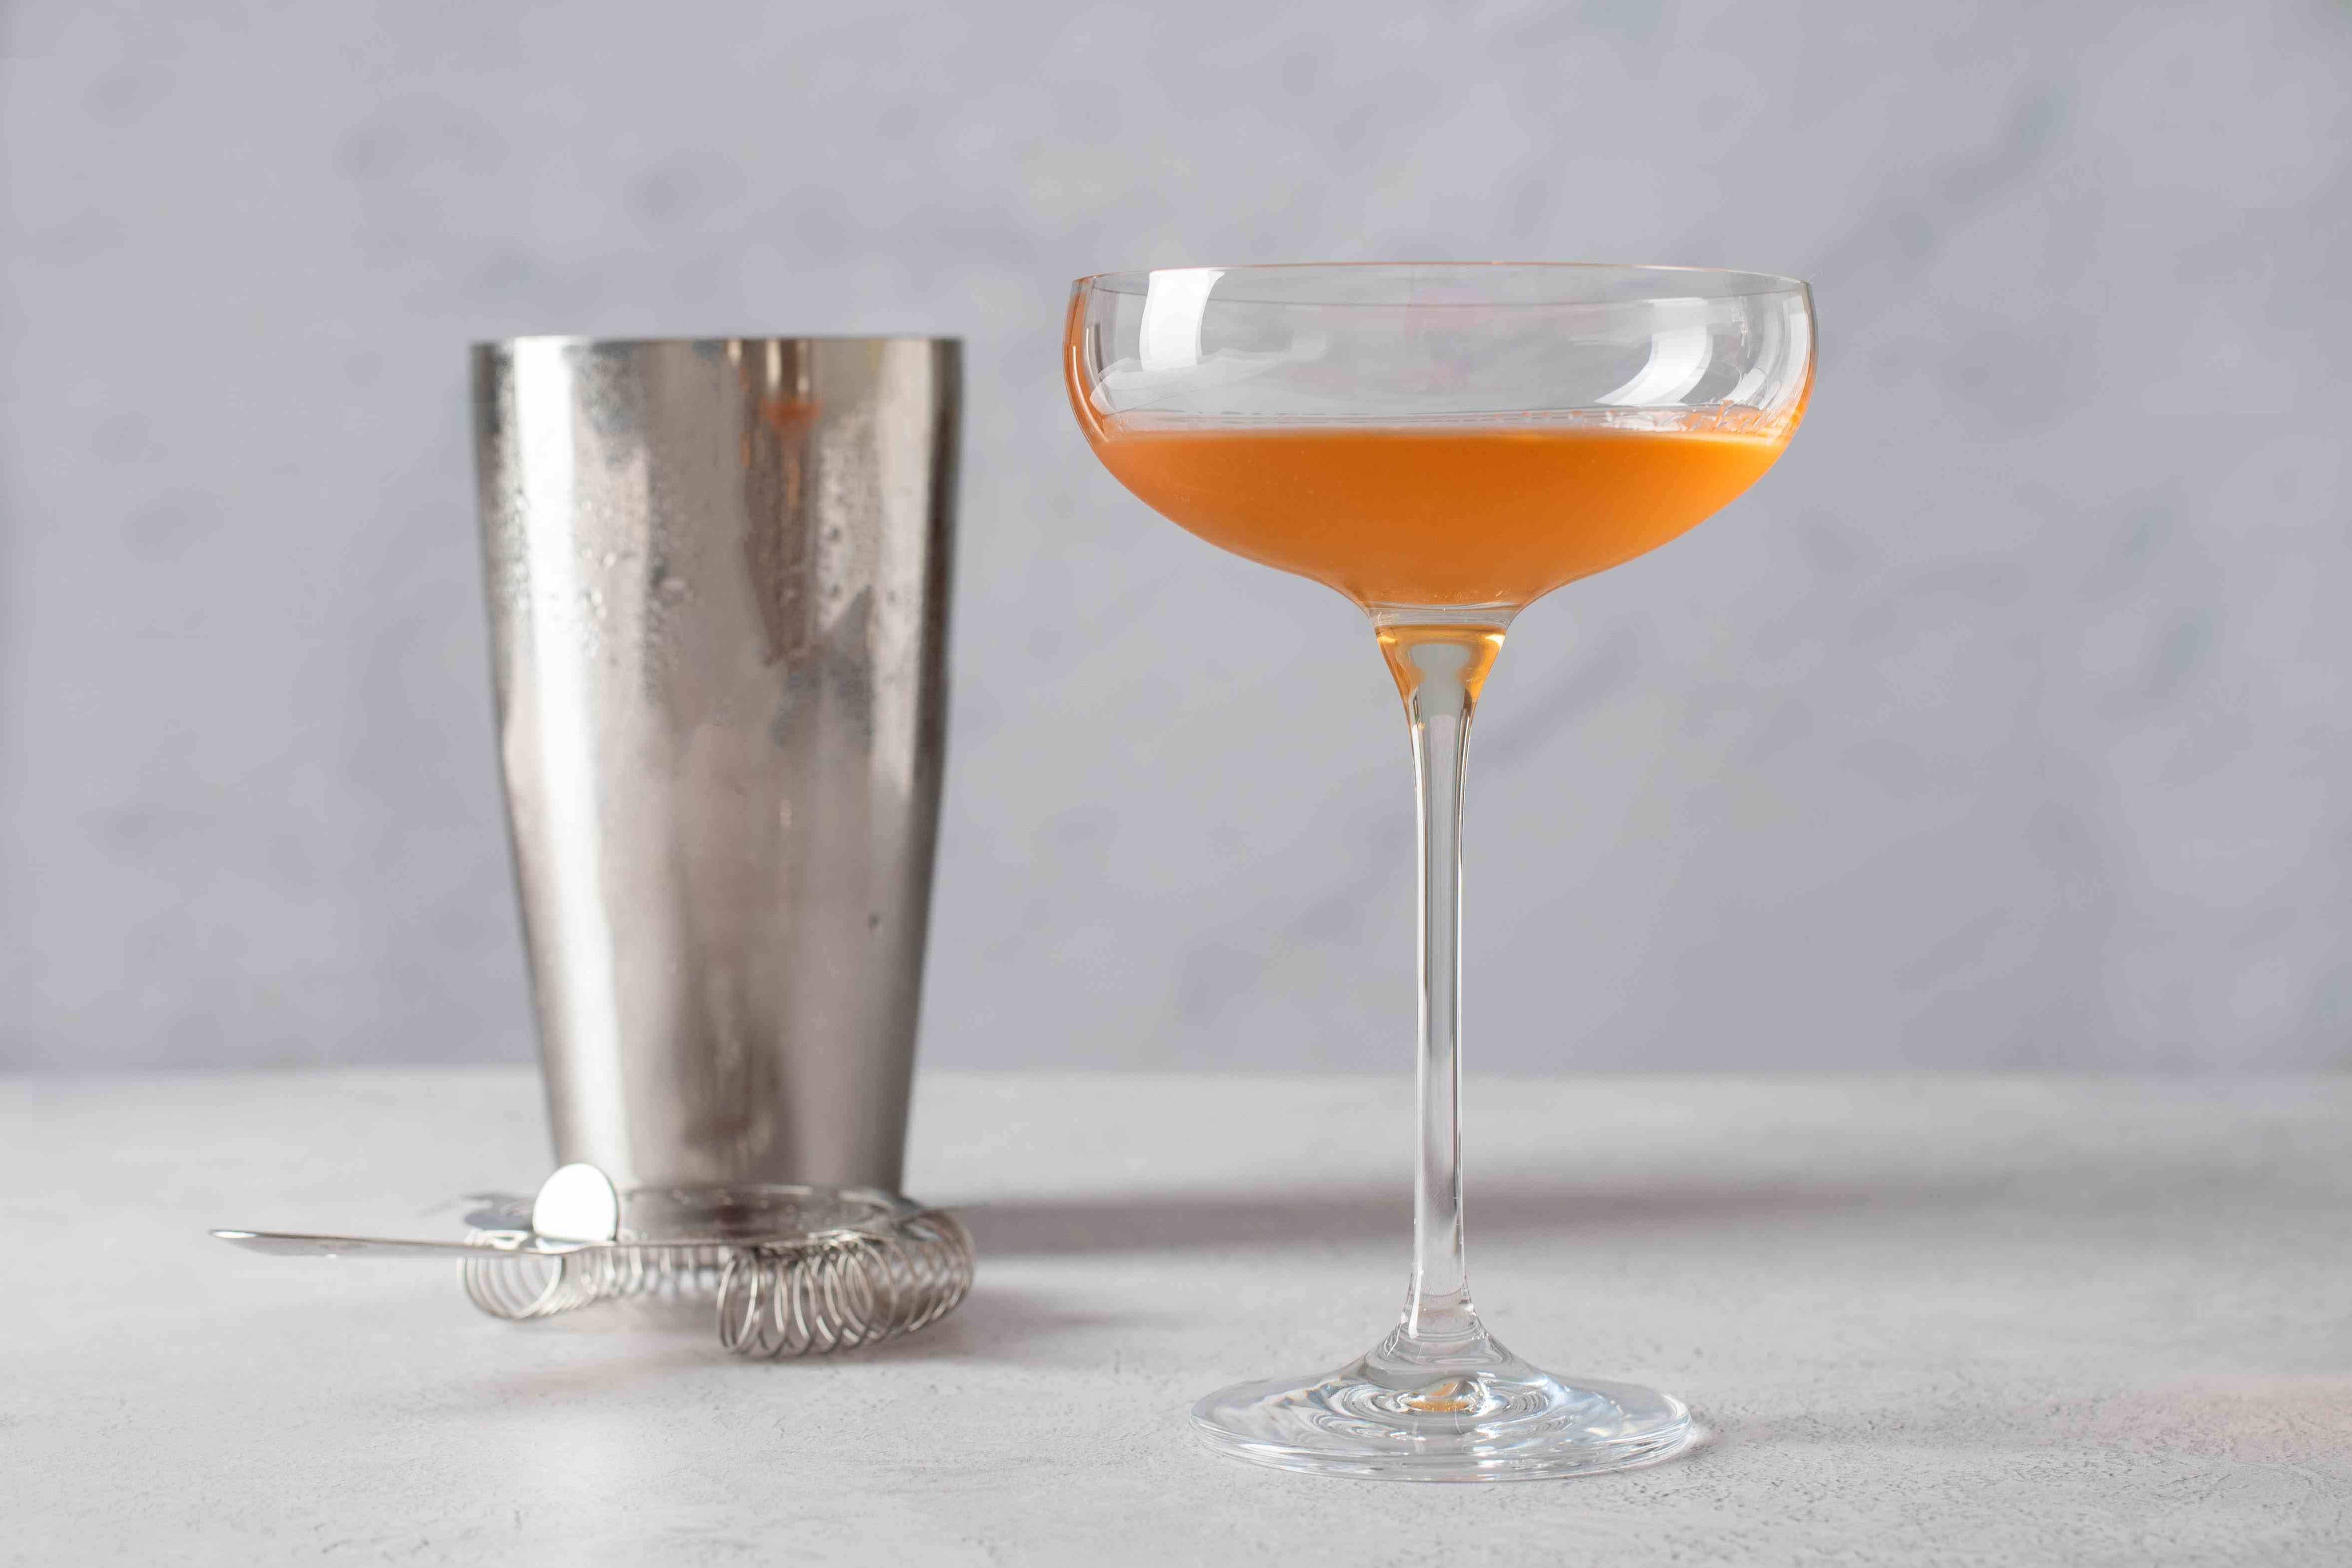 strain pink gin cocktail into a glass